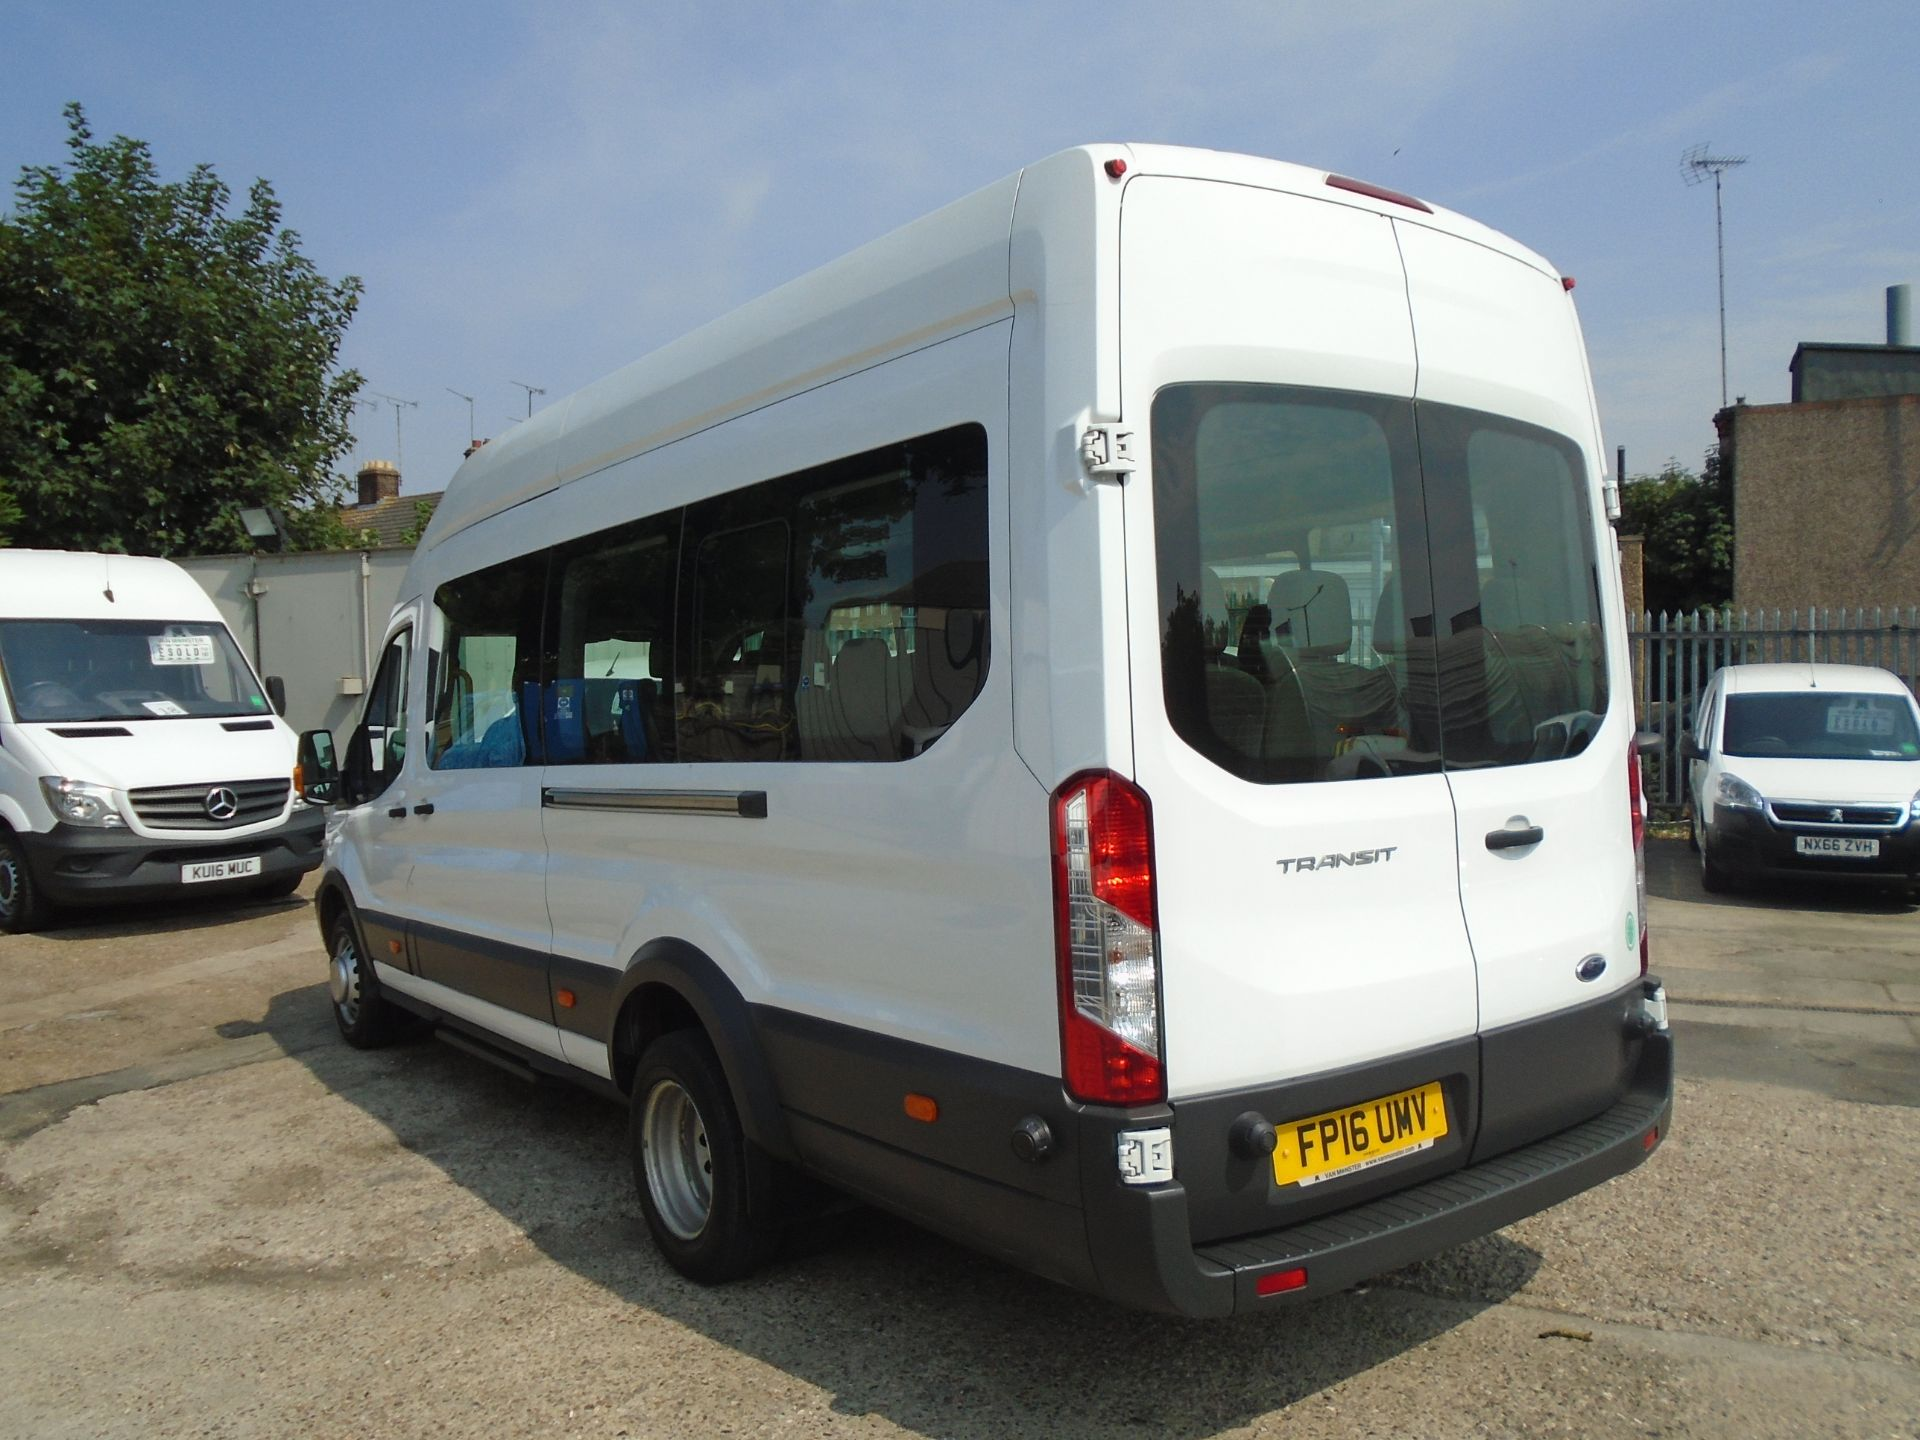 2016 Ford Transit 2.2 Tdci 125Ps H3 17 Seater (FP16UMV) Image 4